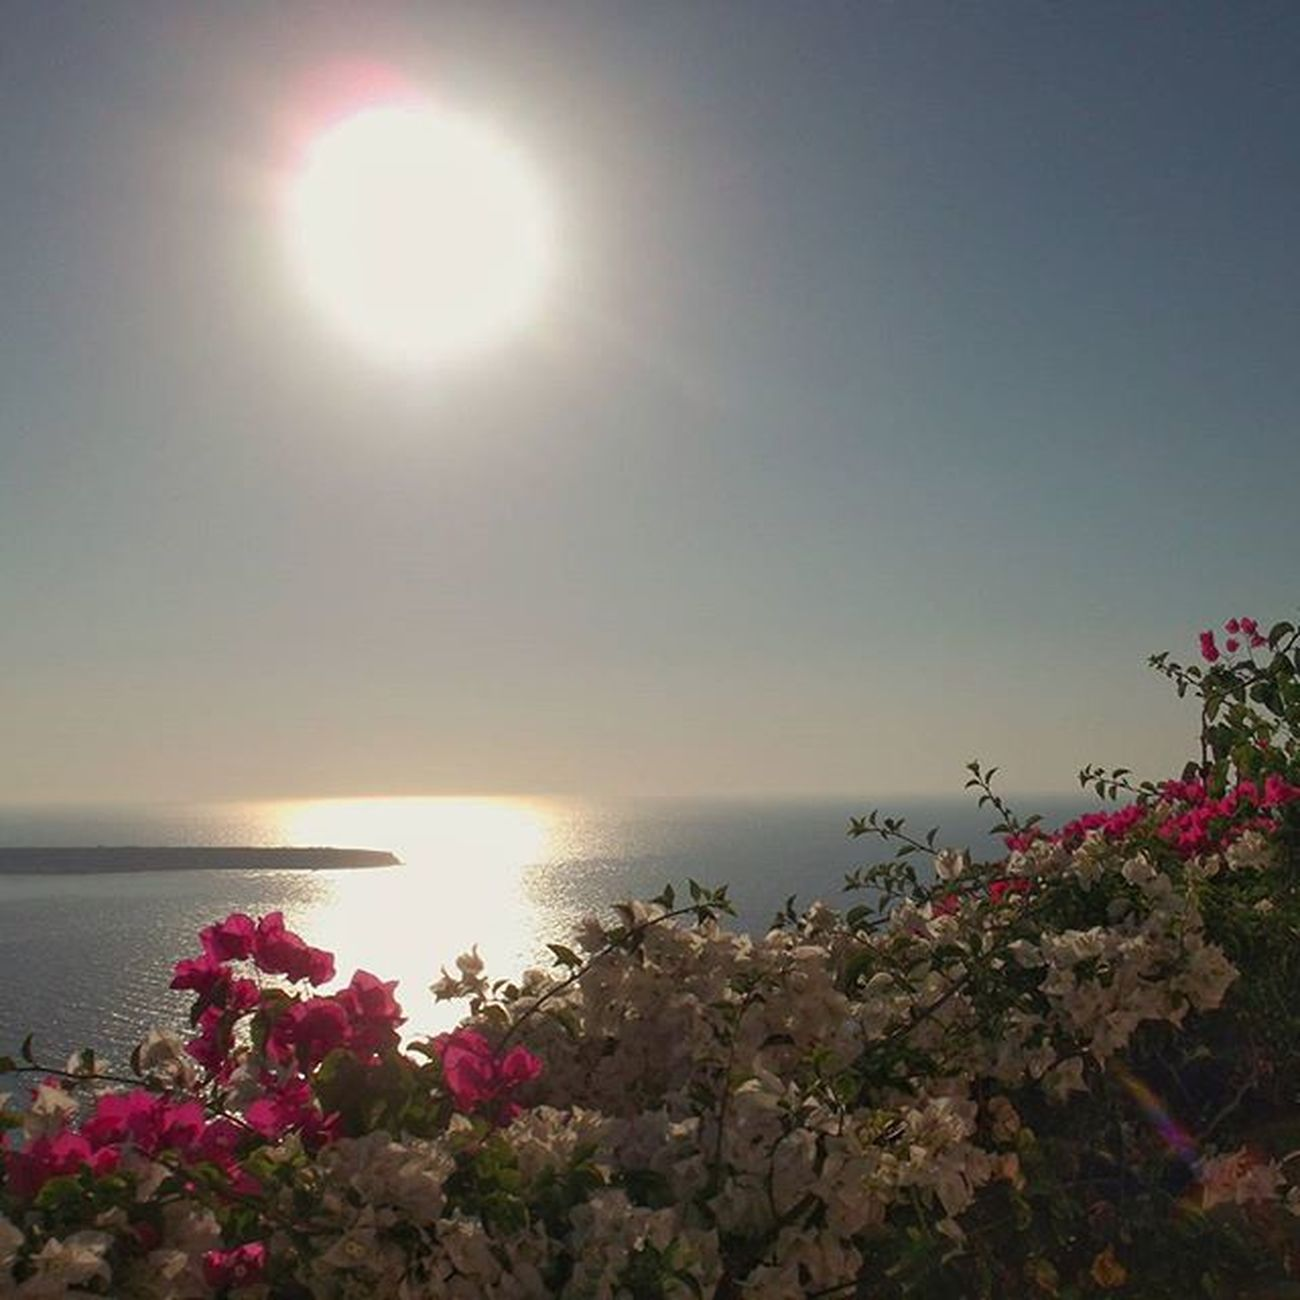 SUNSET AND FLOWERS. OIA VILLAGE, 7.20 pm Oia Oiasunset Oiavillage Santorini Santoriniisland Ilovesantorini Ilovegreece Cyclades_islands Cyclades Greekyogurt Greeksunset Sunset Flowers Flowerstagram Sun Greece2015 Greecestagram Greecelovers Greecelover_gr Grecia Estateingrecia